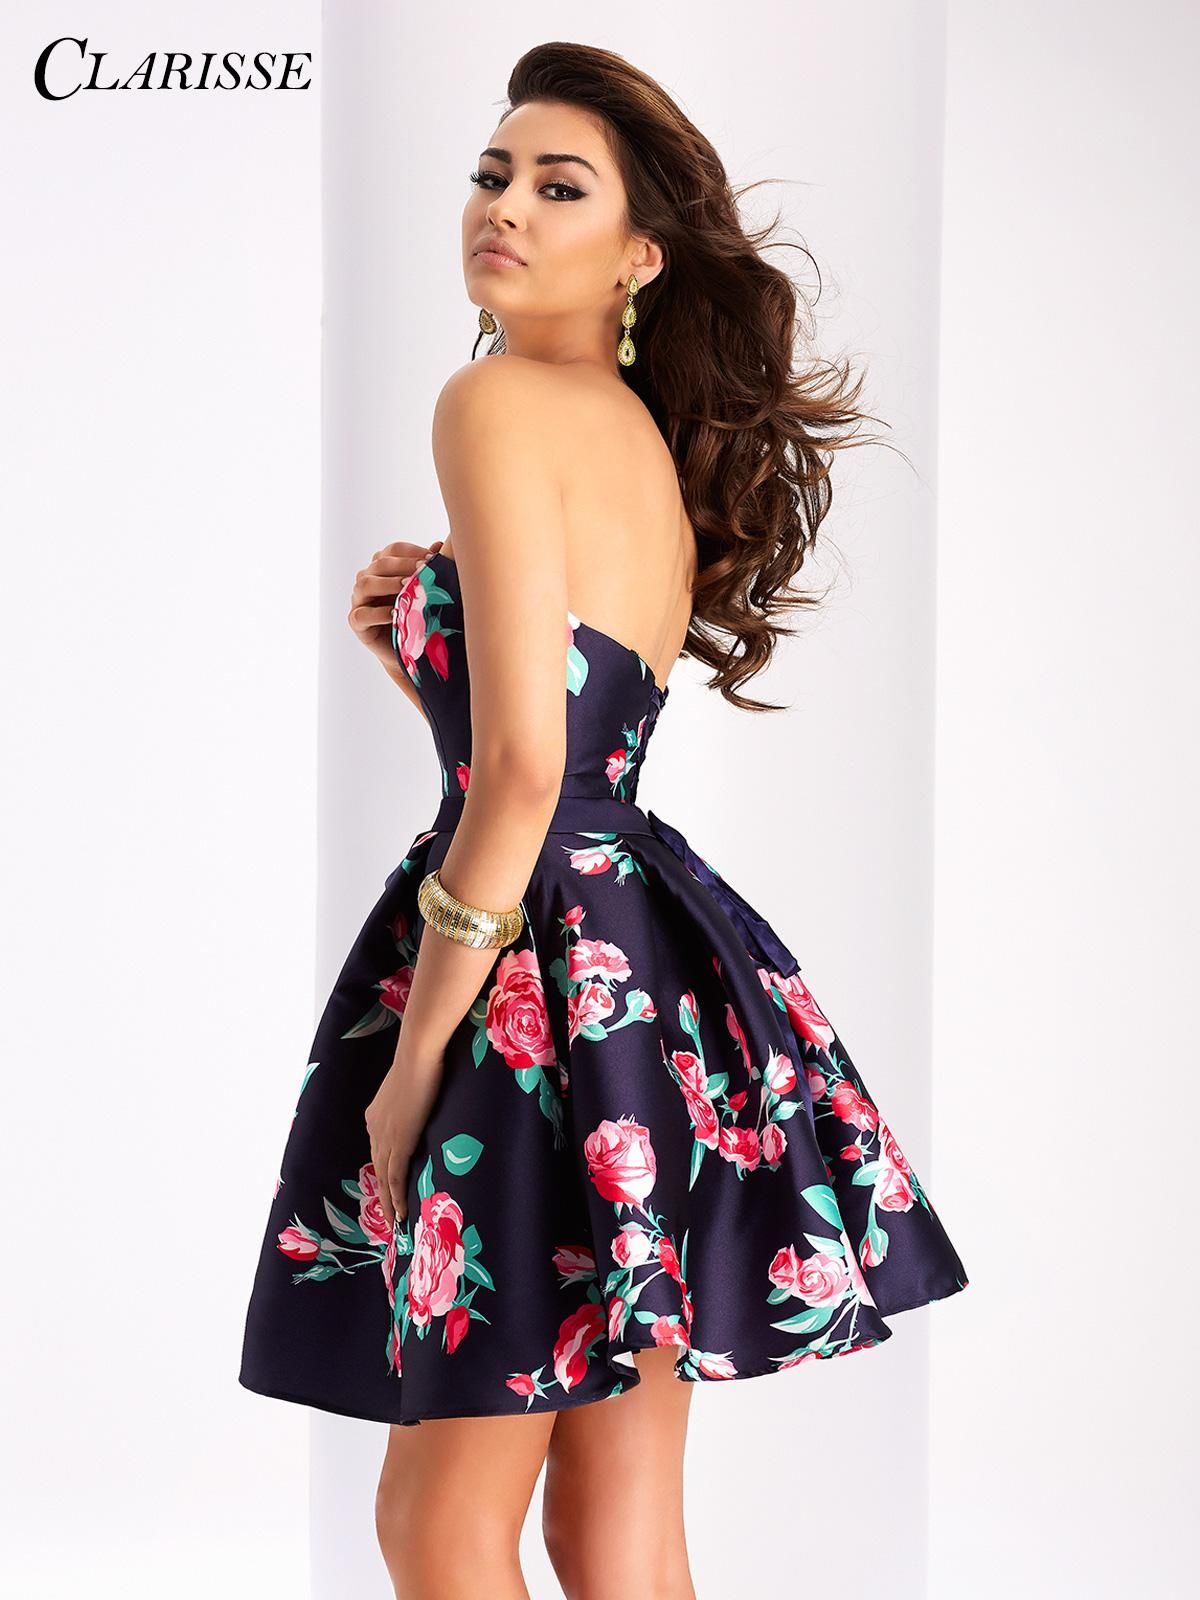 Short floral clarisse prom dress style dance the night